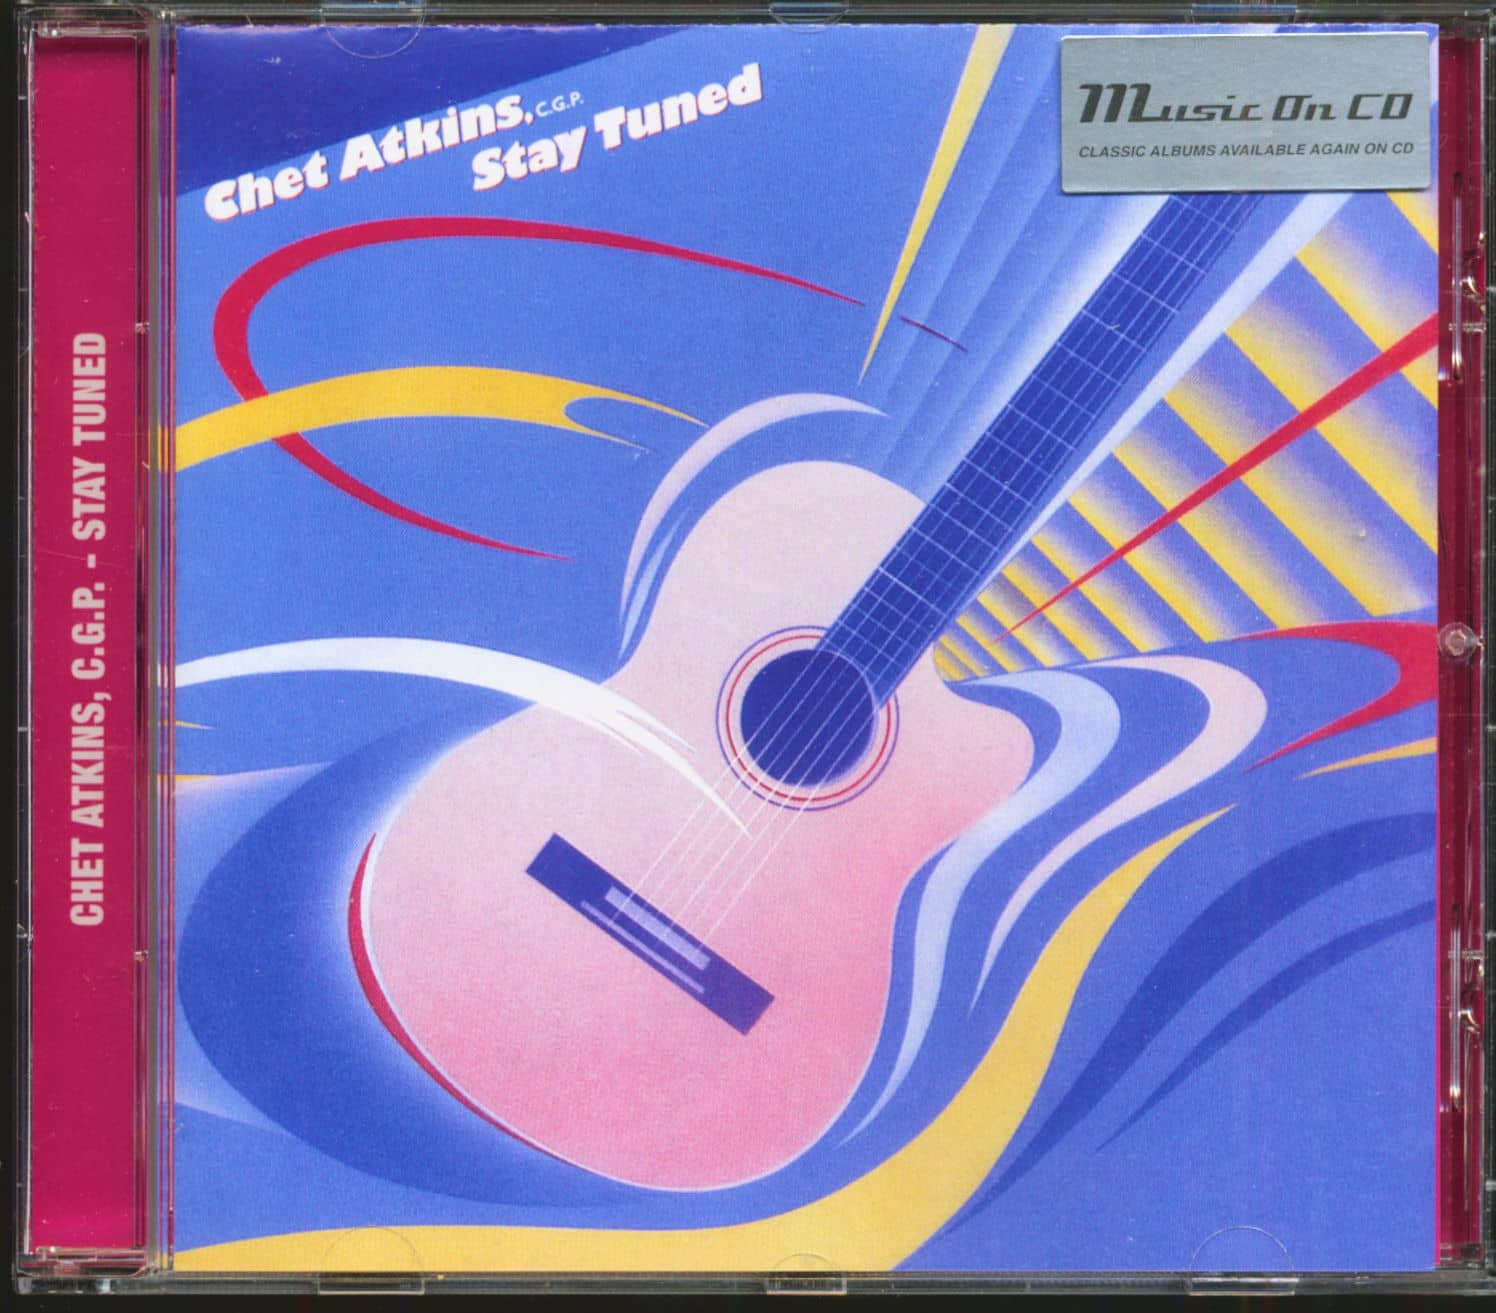 Country & Western Instrumental CDs and LPs bear-family com